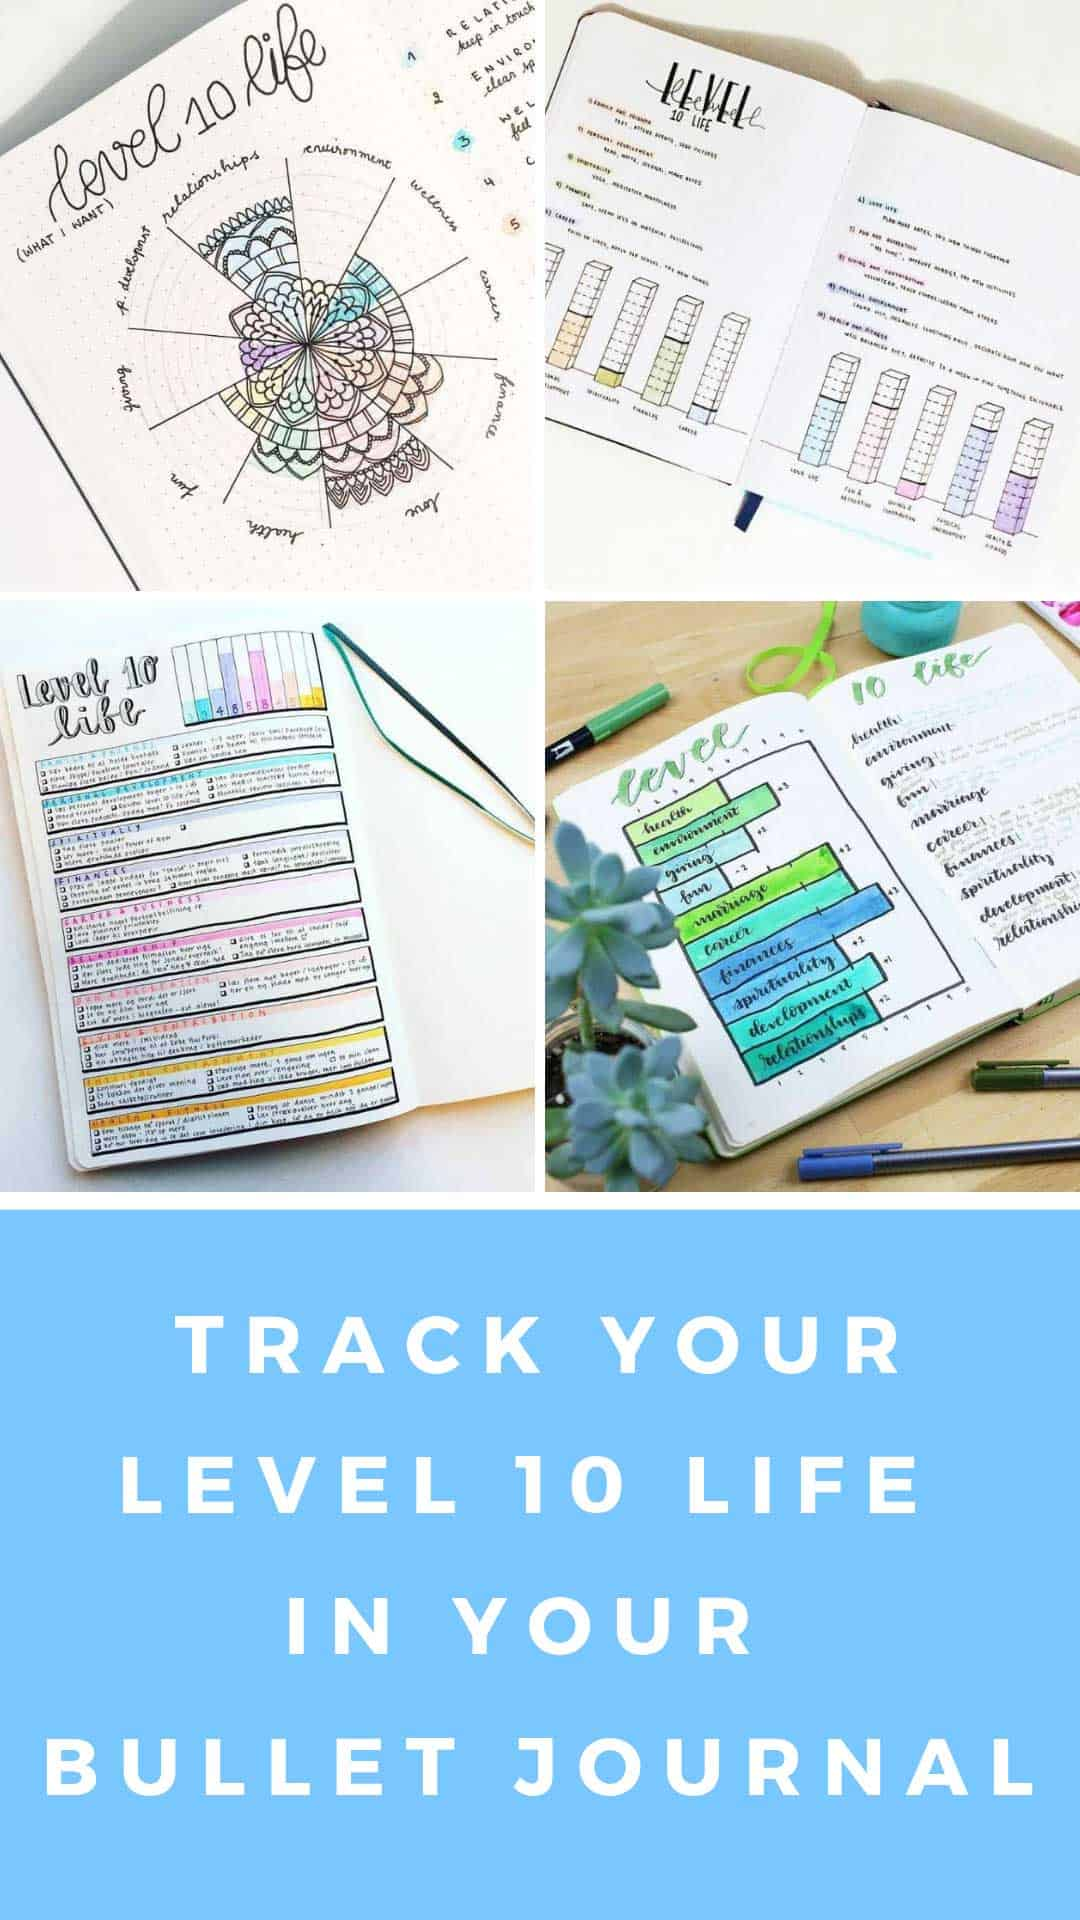 10 Ways to Track Your Level 10 Life in Your Bullet Journal